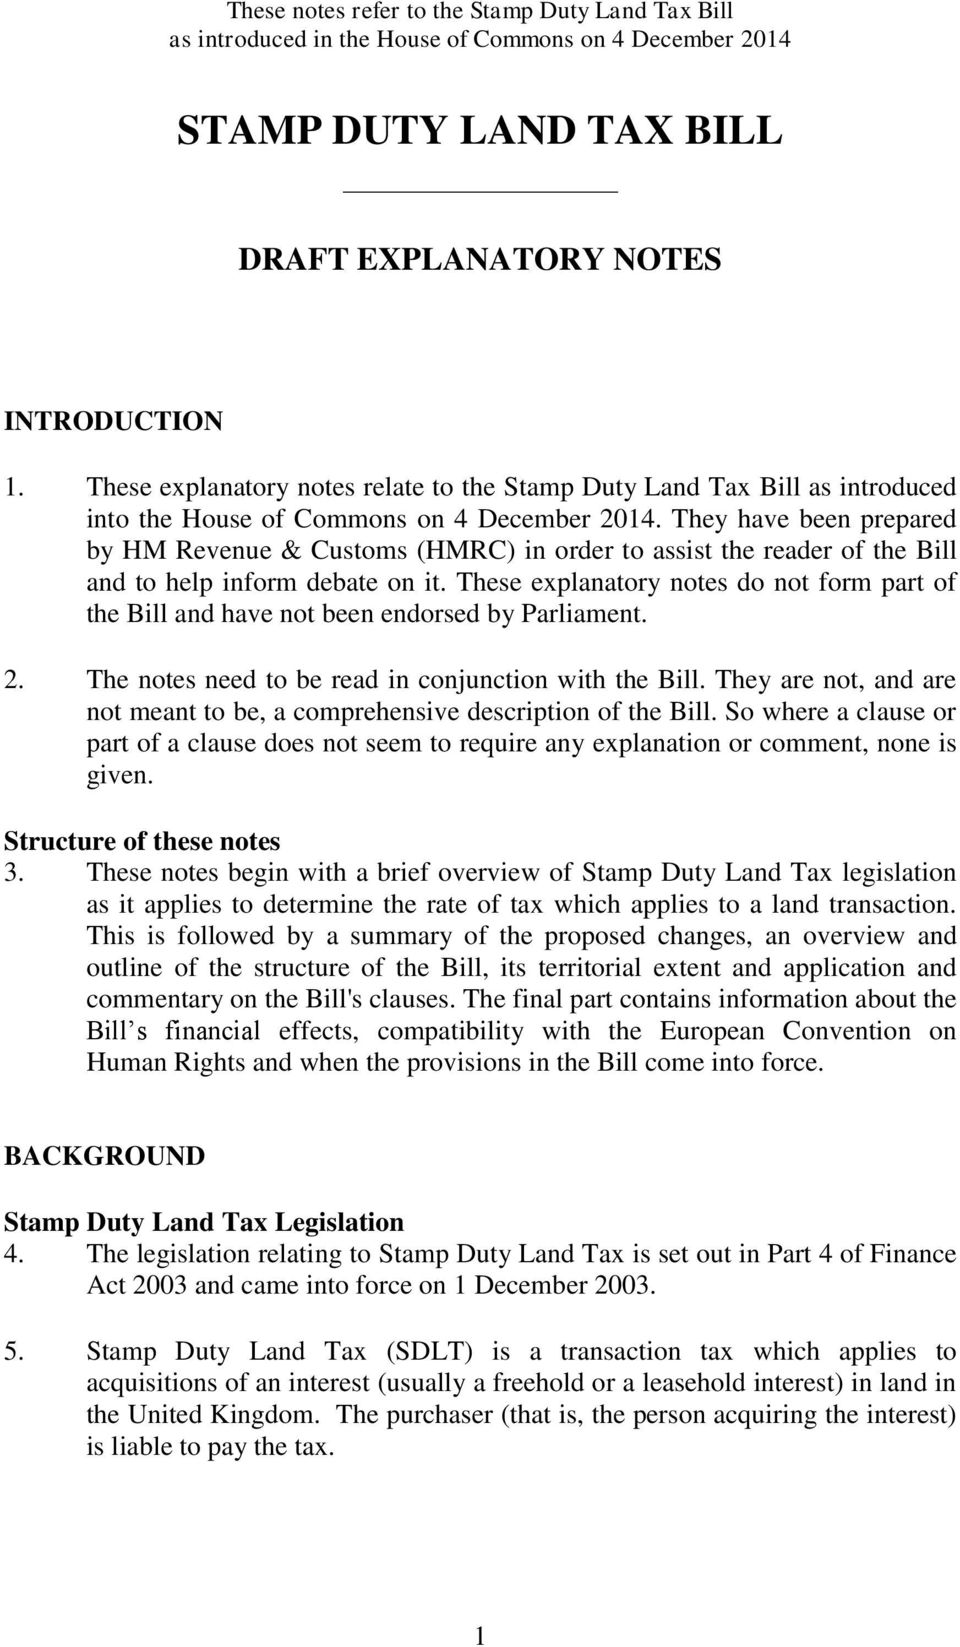 These explanatory notes do not form part of the Bill and have not been endorsed by Parliament. 2. The notes need to be read in conjunction with the Bill.